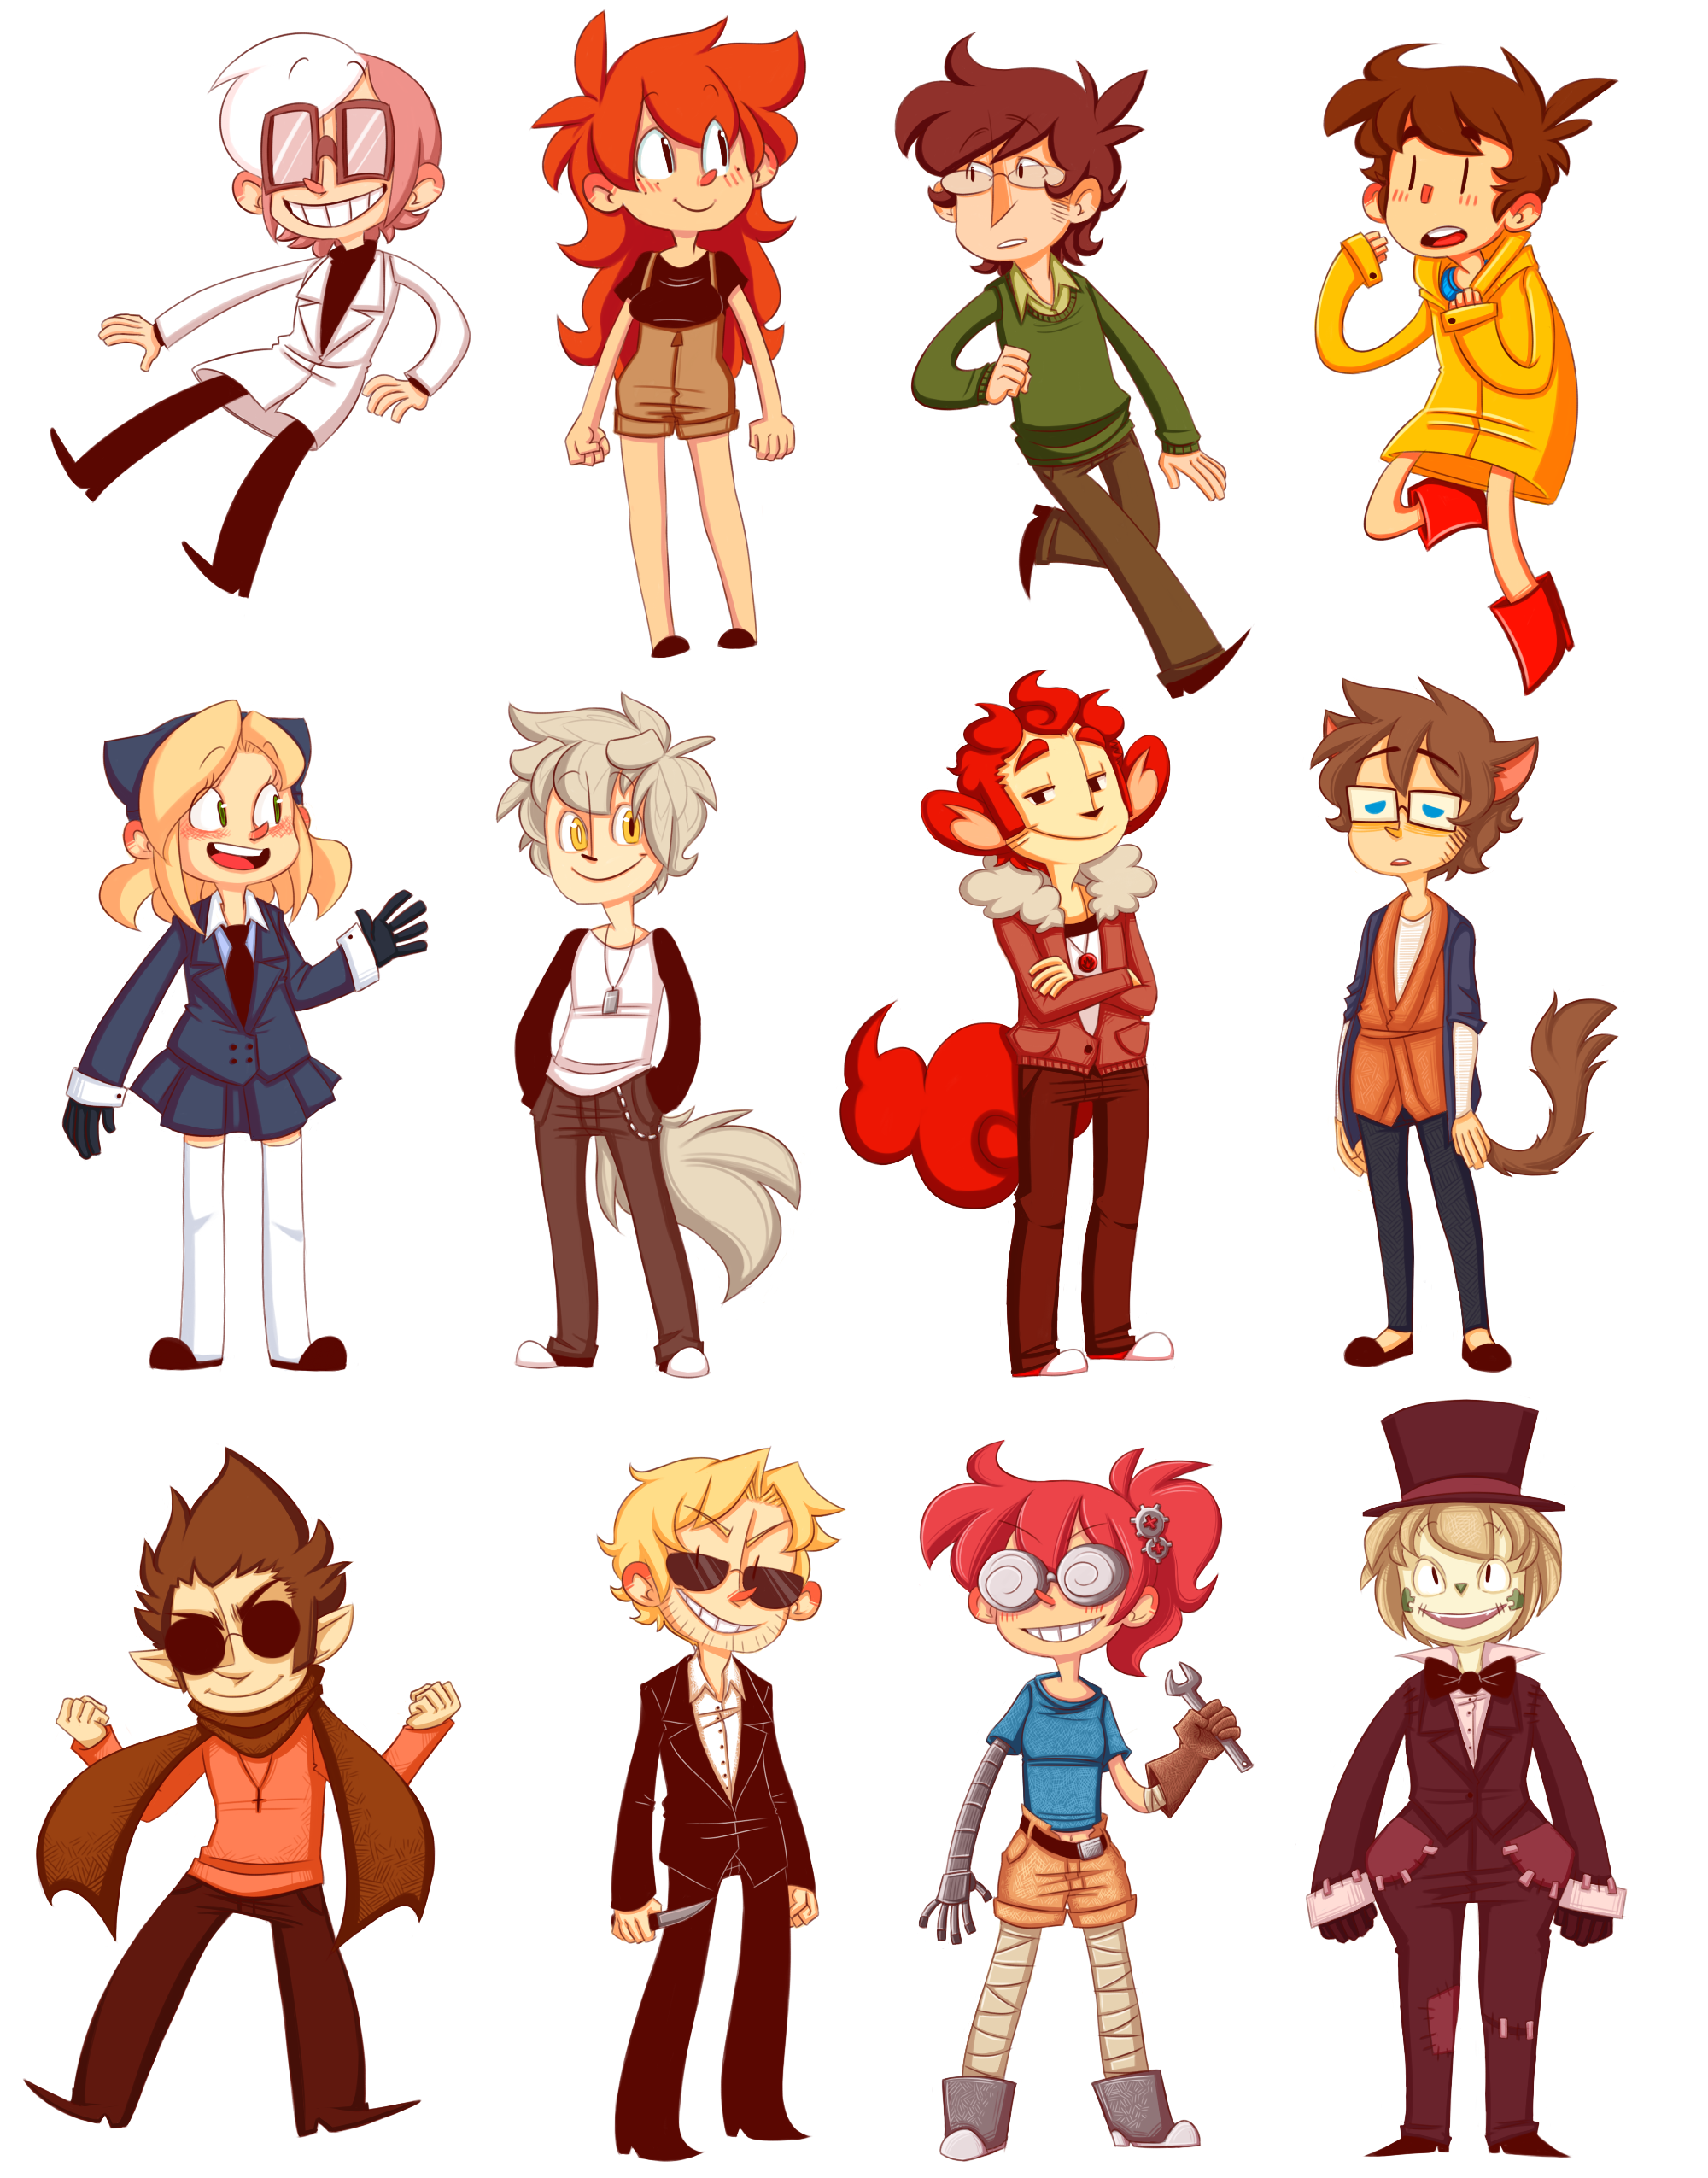 N Anime Character : Original character stickers by nnkcomicrelief on deviantart